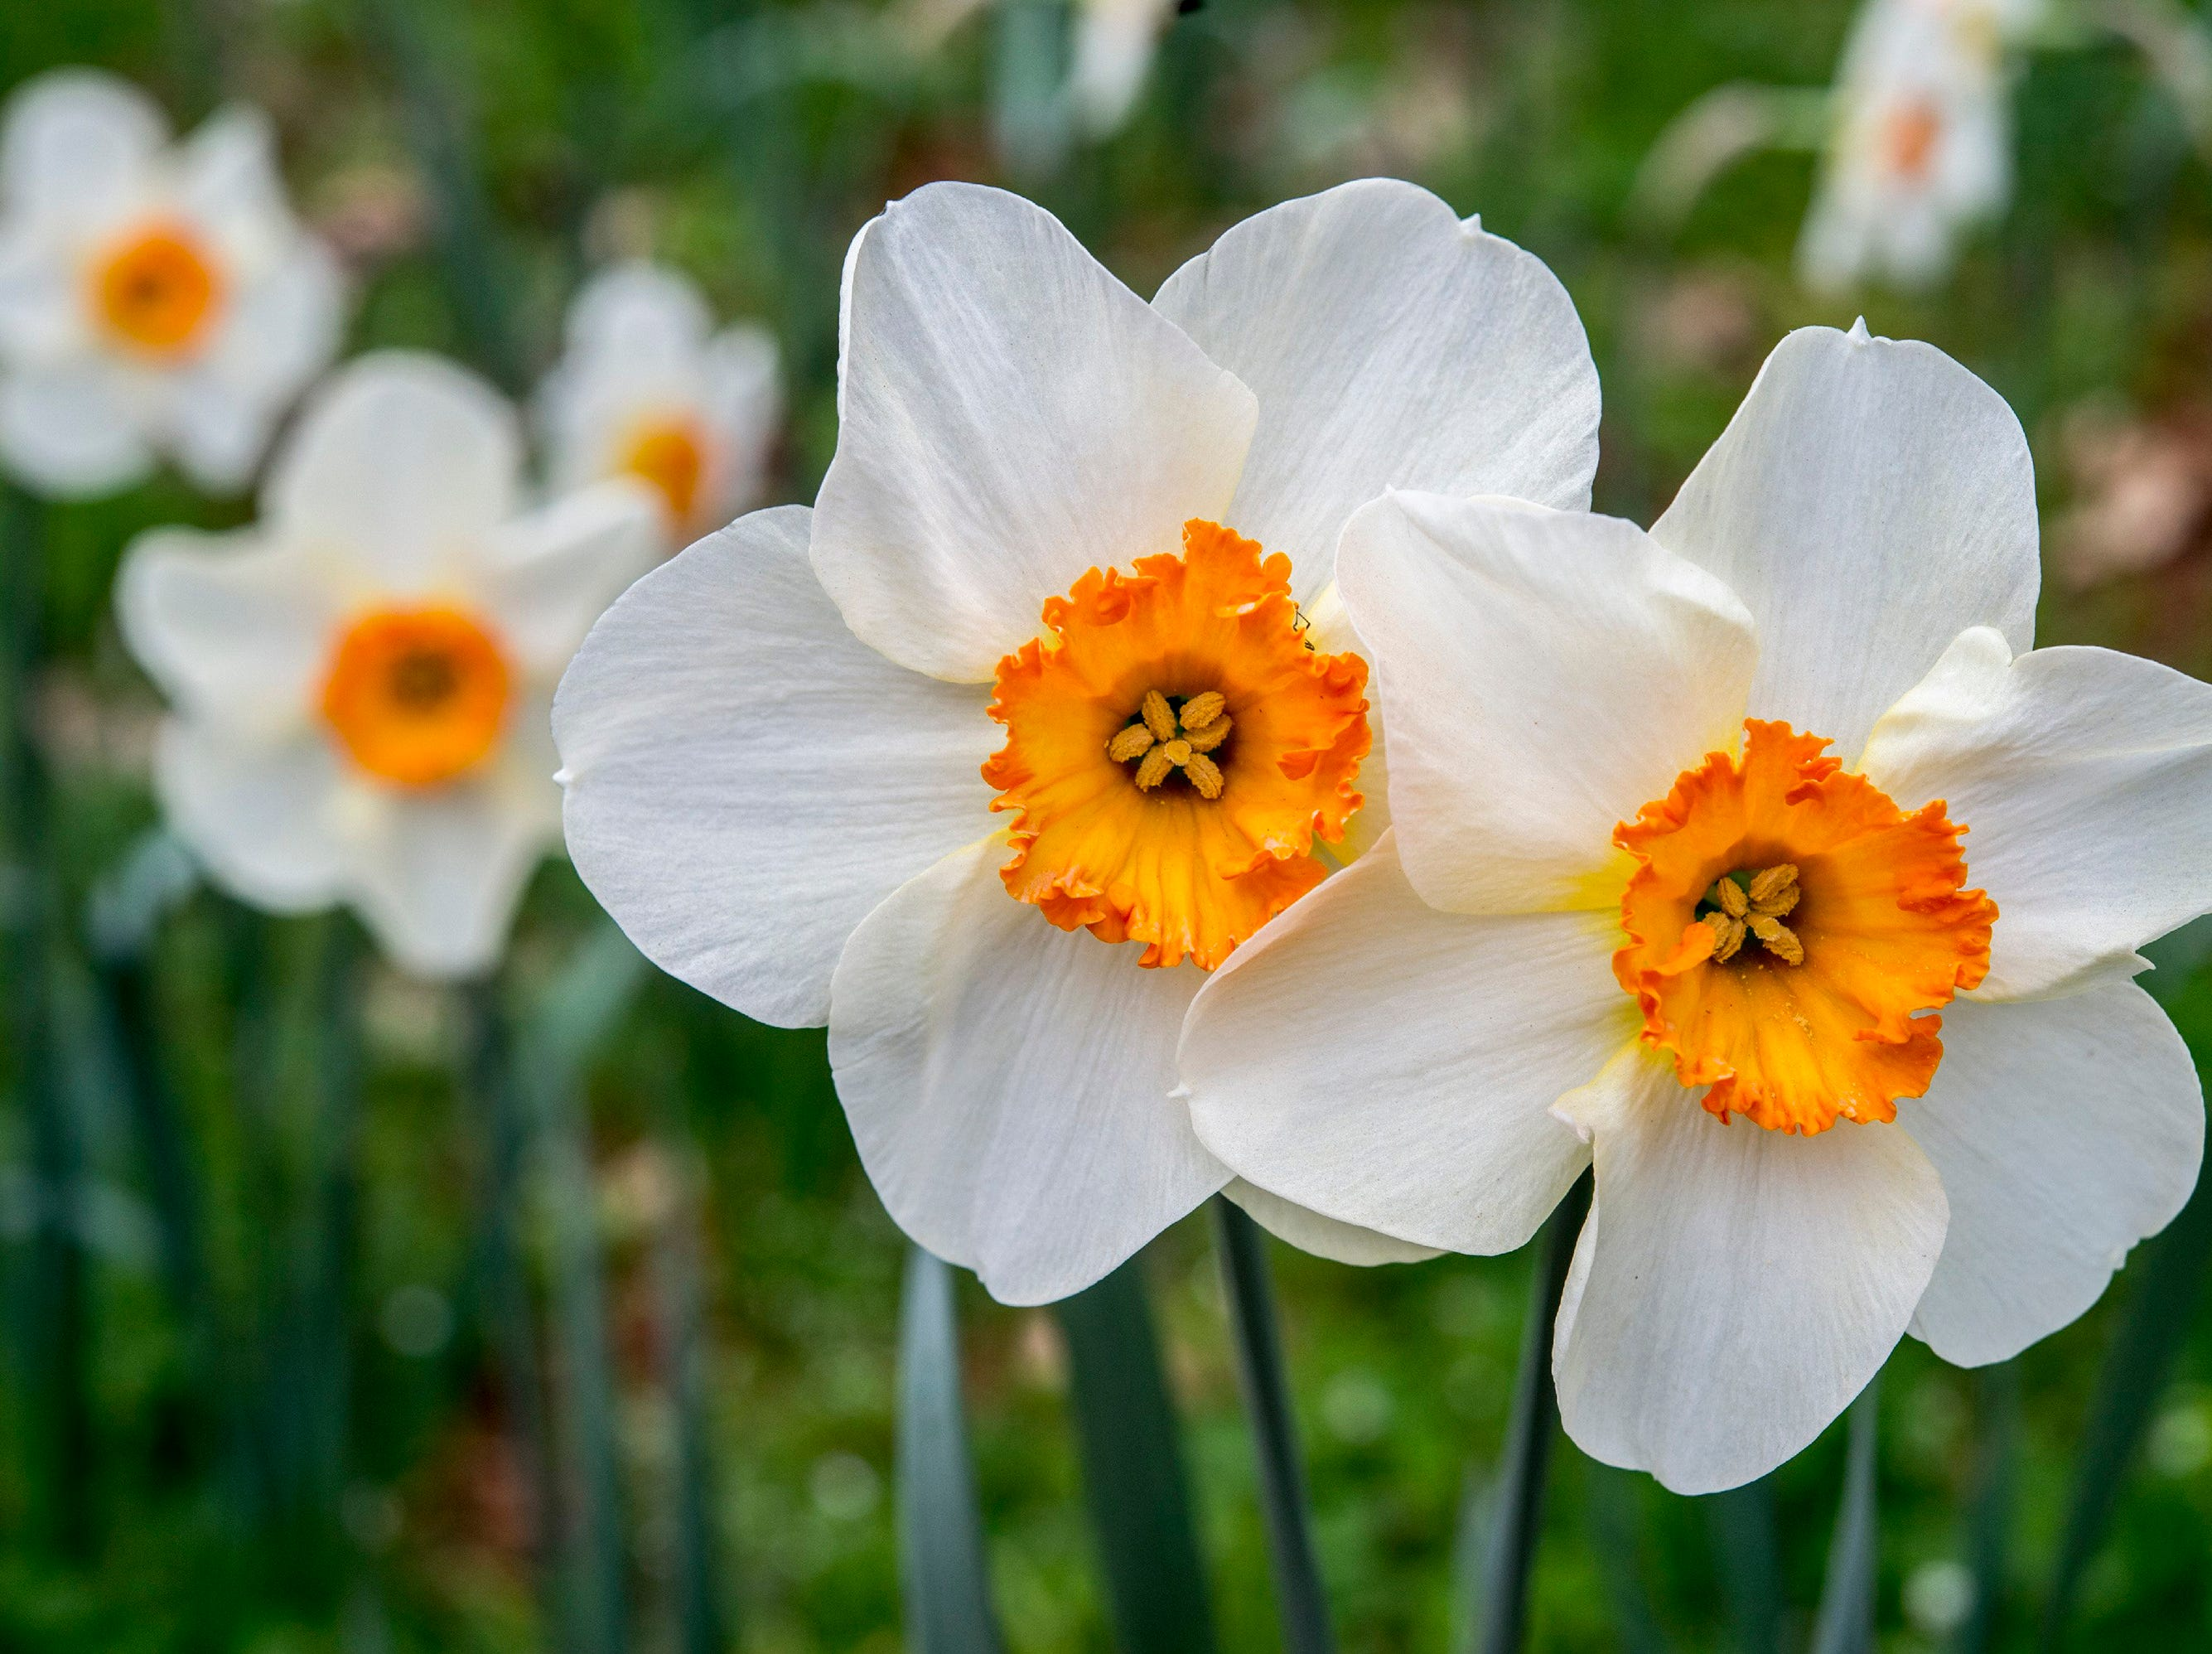 Nothing says spring like daffodils. Daffodils should be planted in the fall for spring blooms.